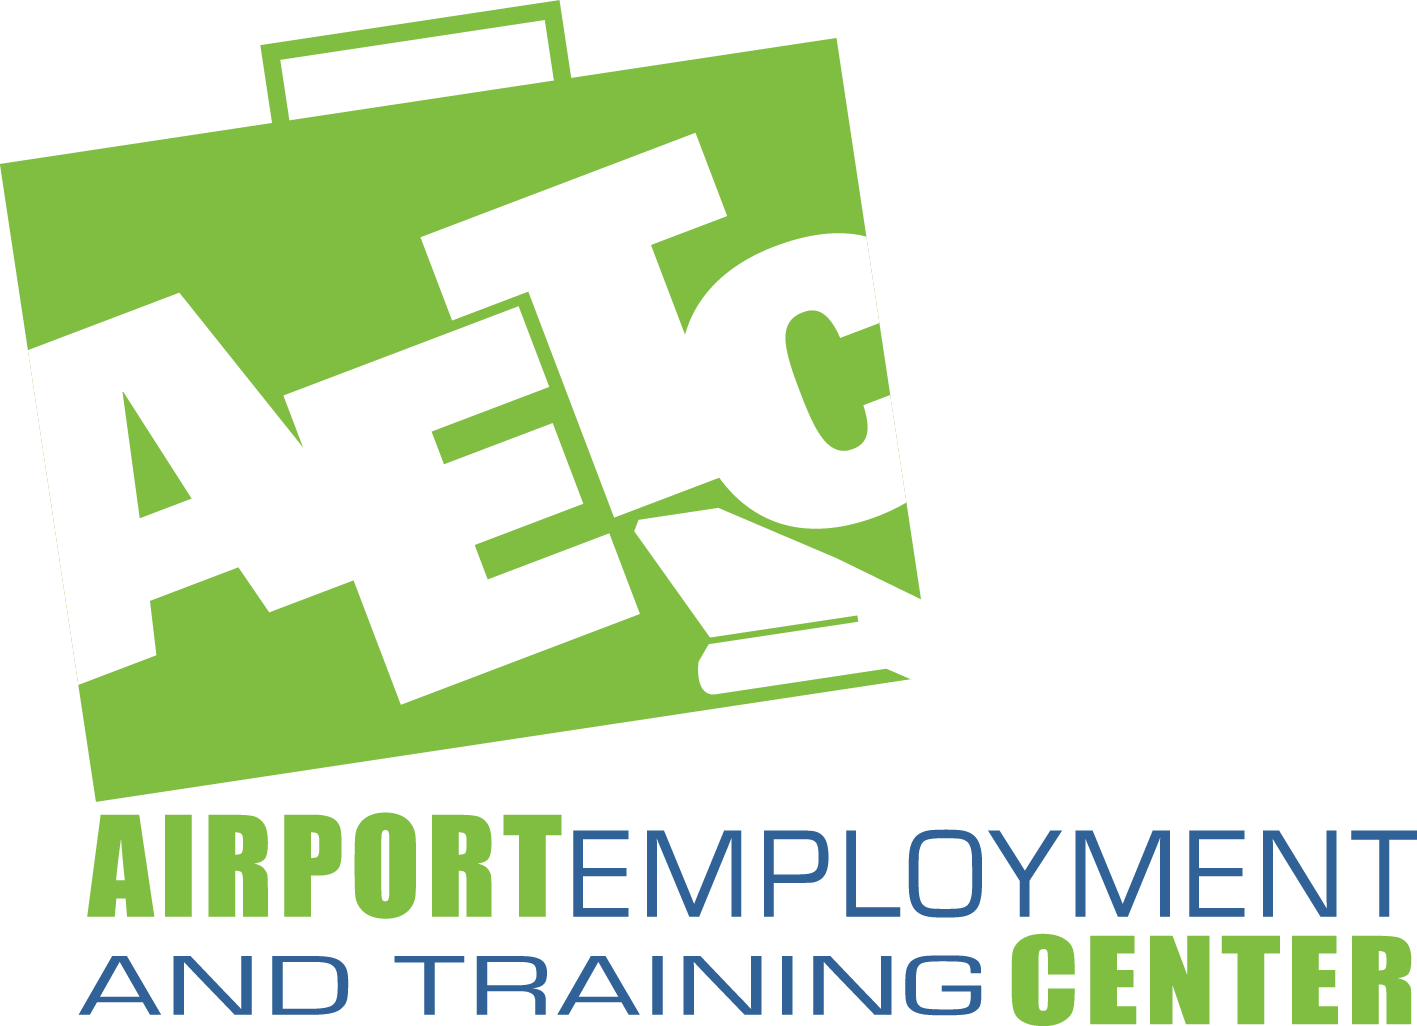 Airport Employment and Training Center